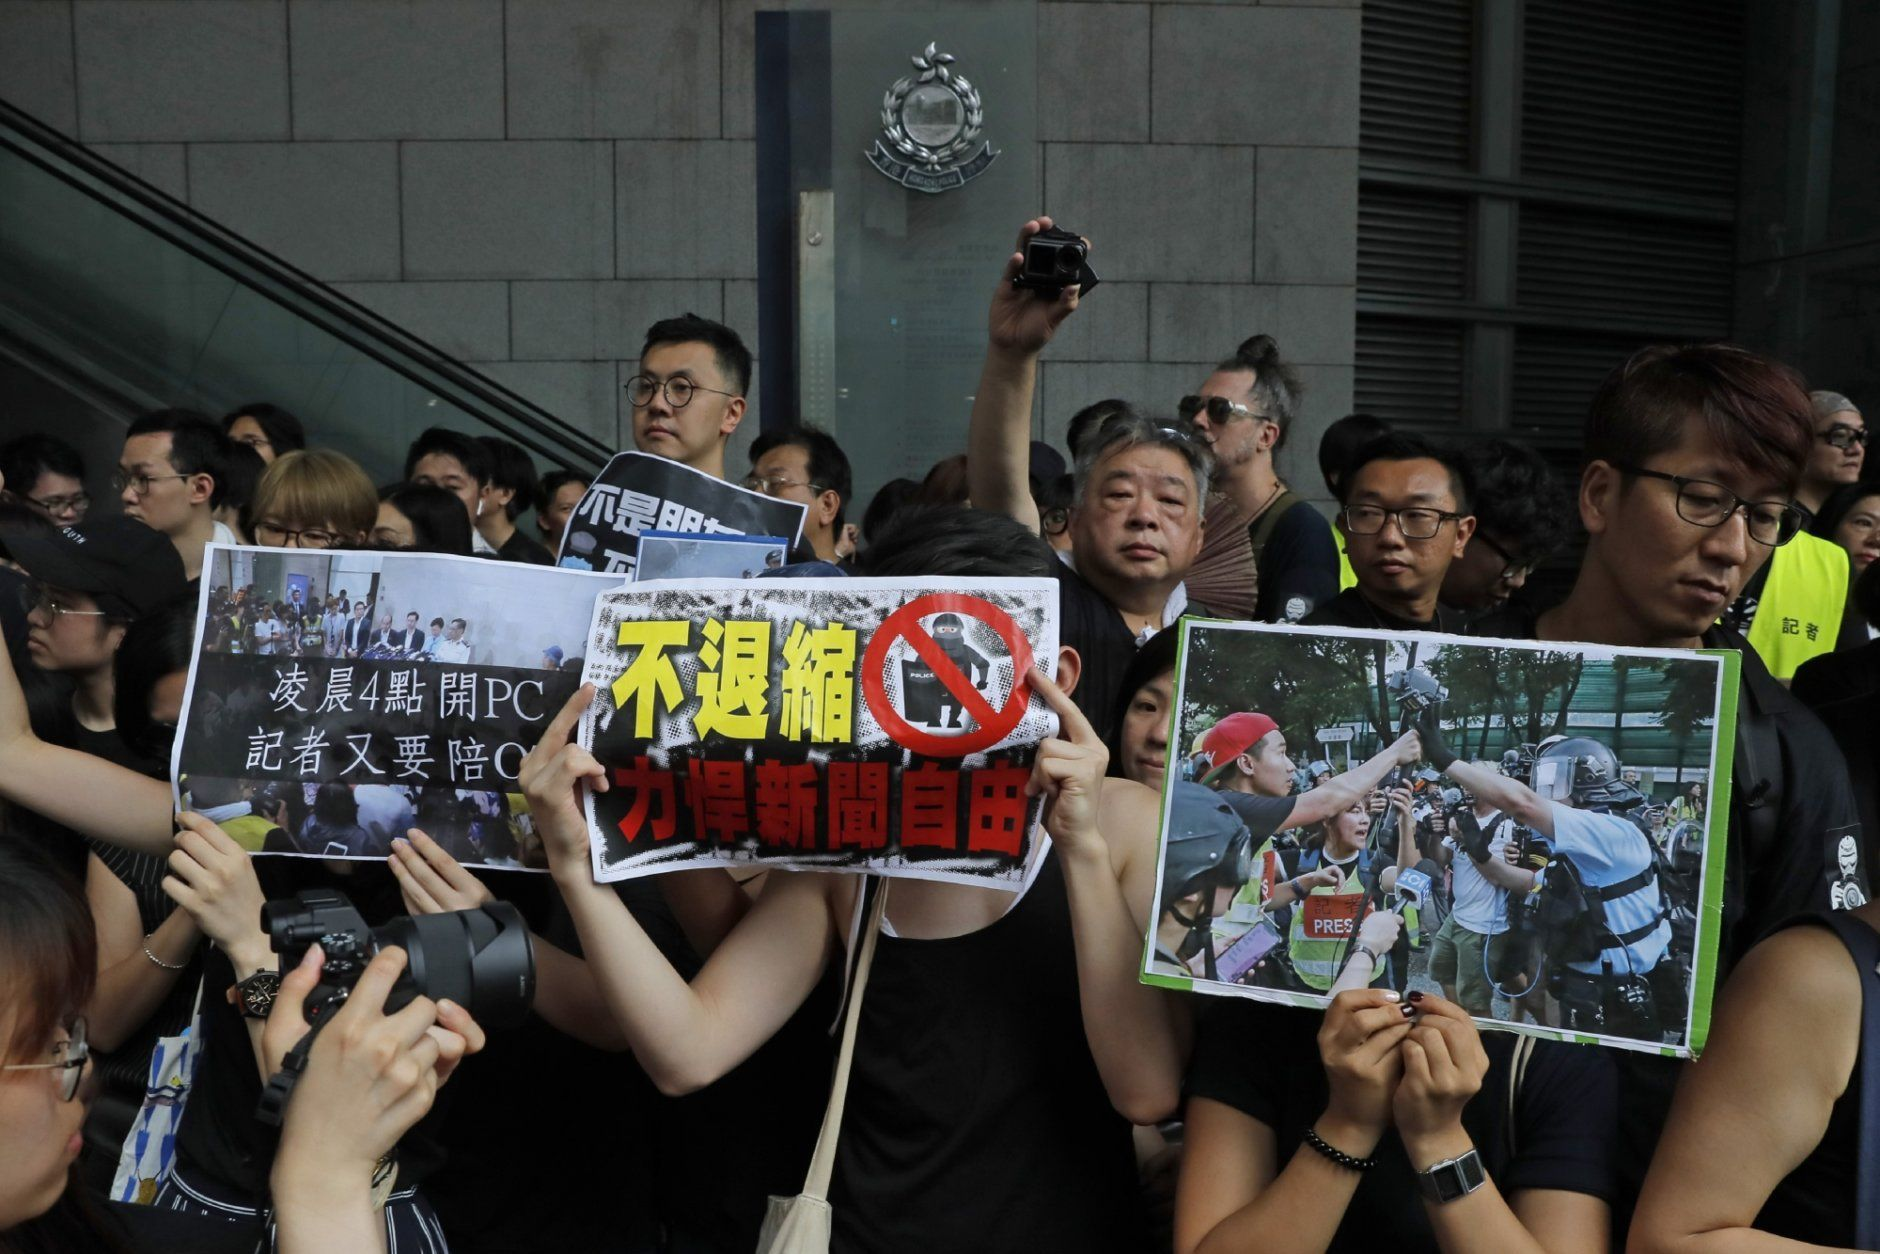 """Journalists hold placards with the words """"Not retreat, defend press freedom"""" during a silent march outside the police headquarters in Hong Kong, Sunday, July 14, 2019, demanding police to stop assaulting journalists and obstructing reporting. (AP Photo/Kin Cheung)"""